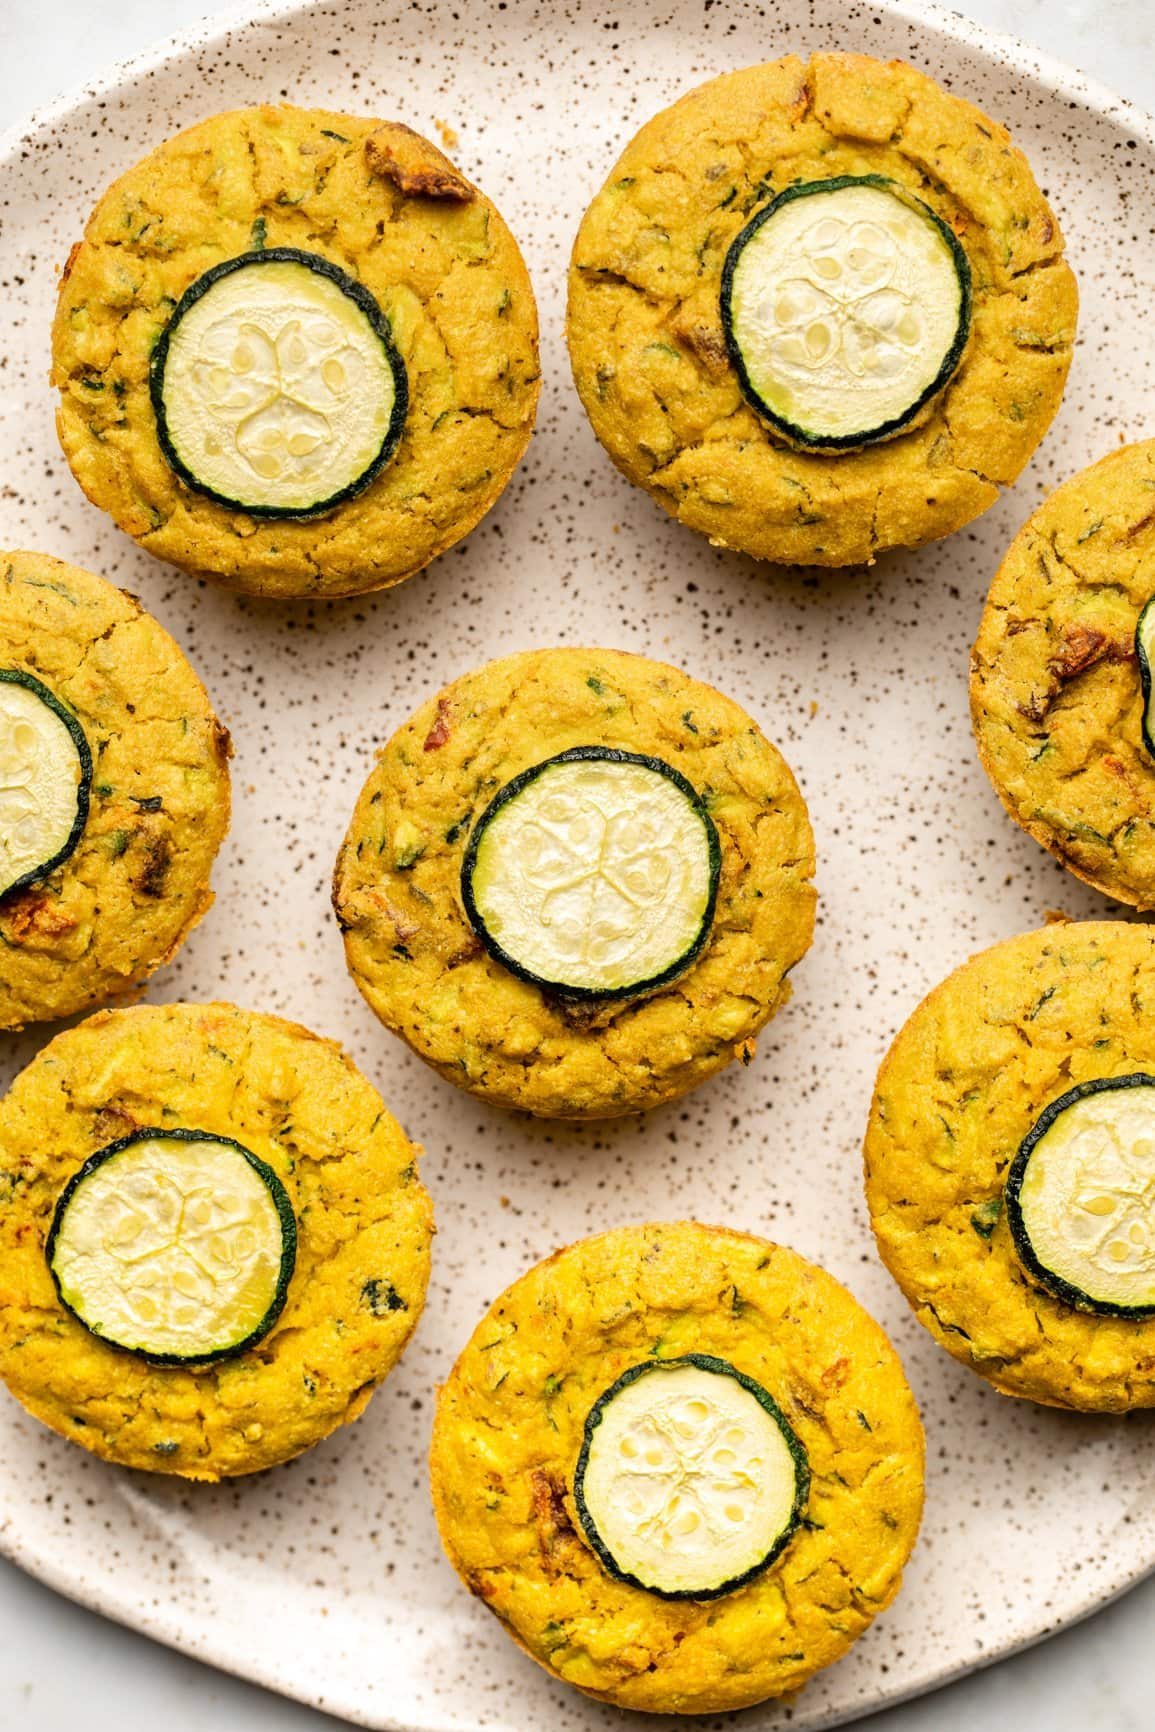 cooked savory zucchini muffins arranged on white speckled plate